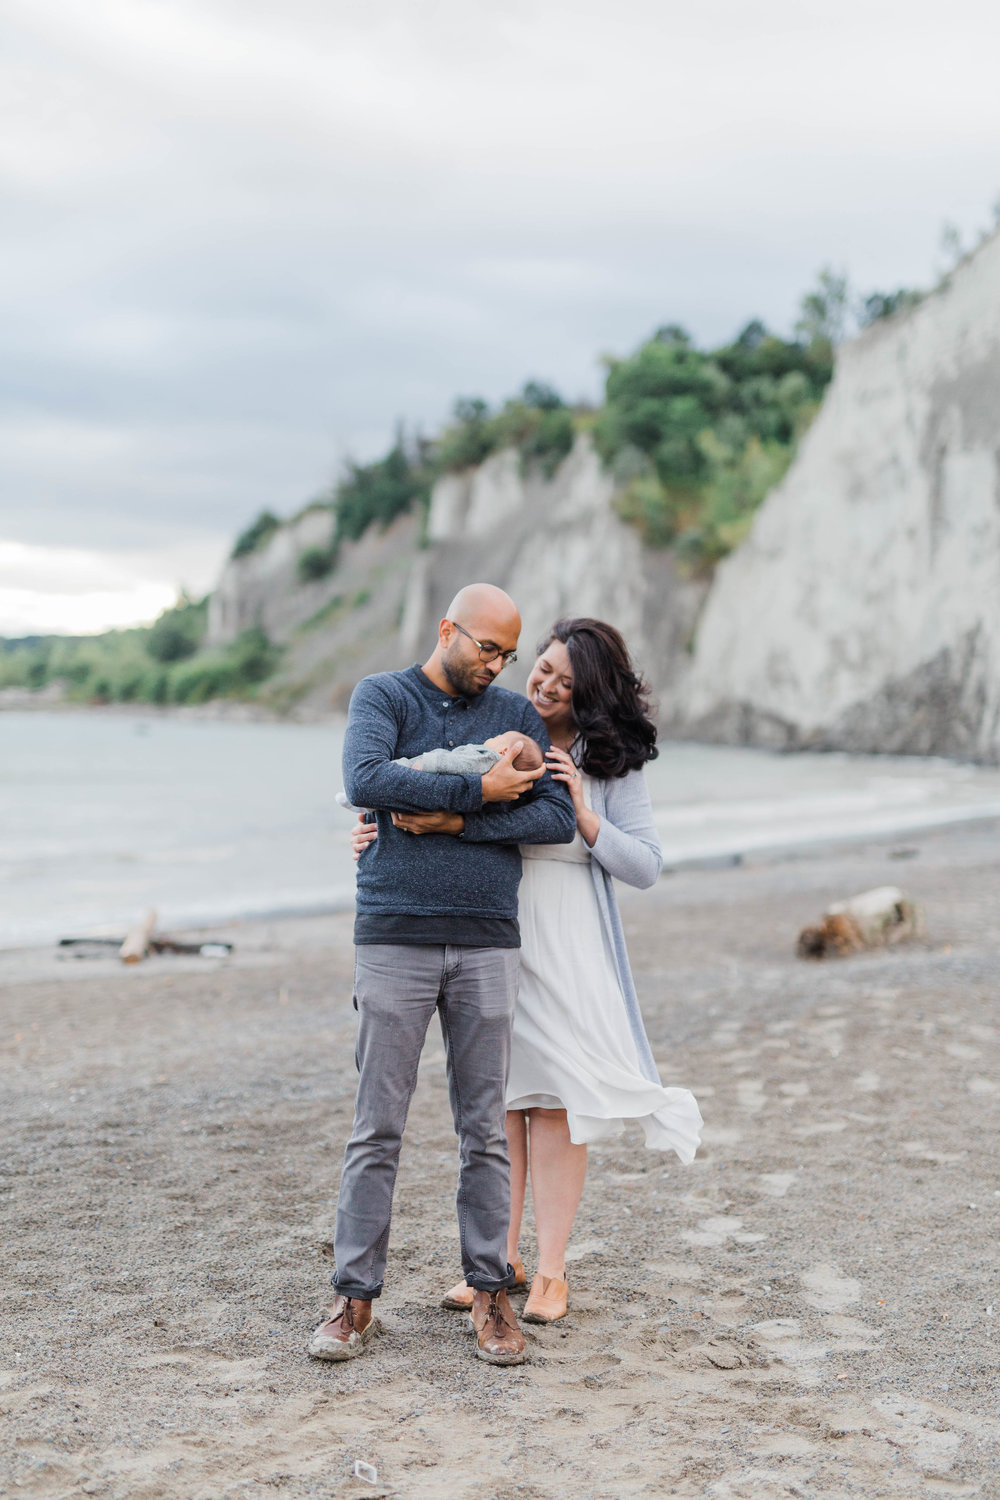 Danielle-Giroux_Lindsay-Sunil_Newborn-Session_Scarborough-Bluffs_-0075.jpg